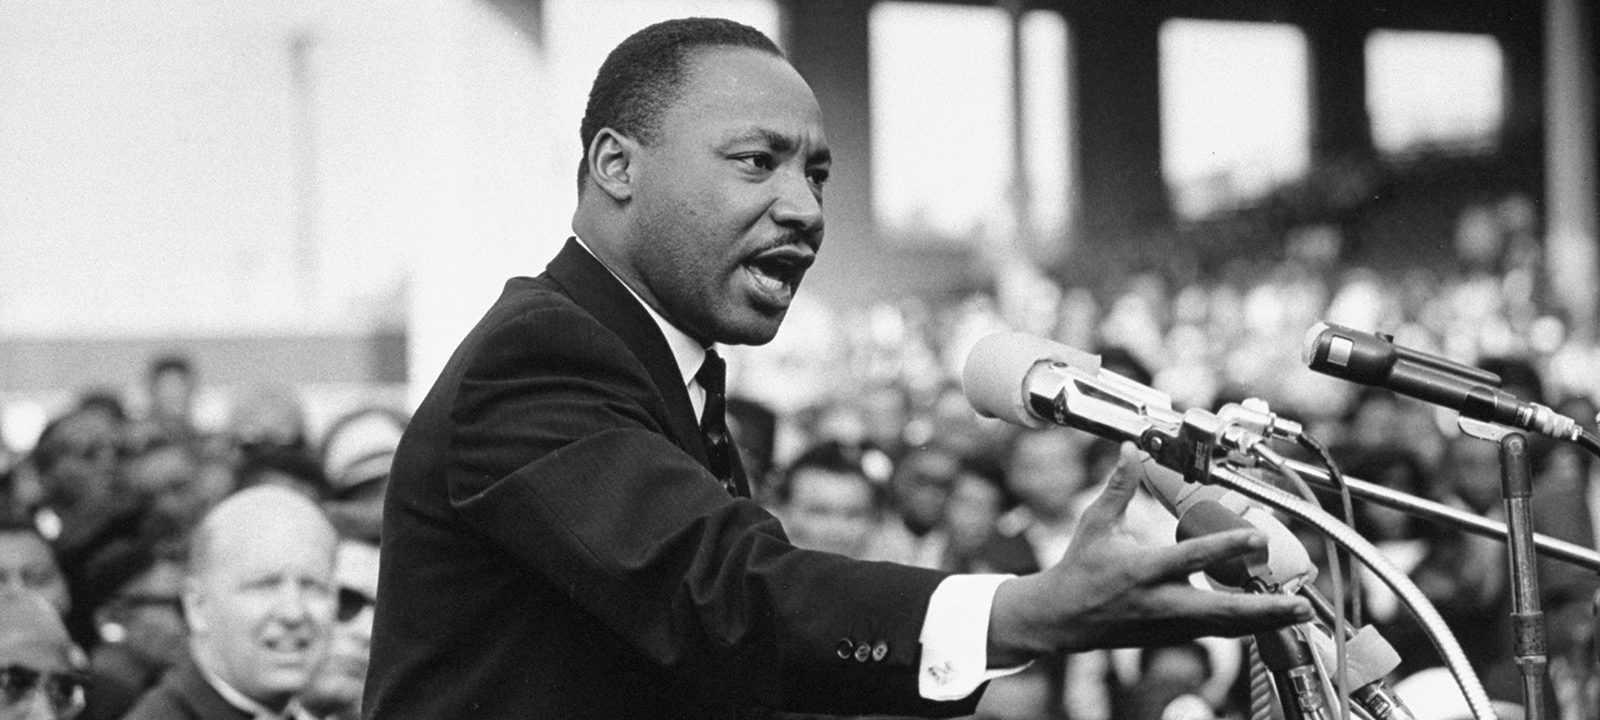 Martin Luther King Jr.'s background as a priest helped with his oratory skills